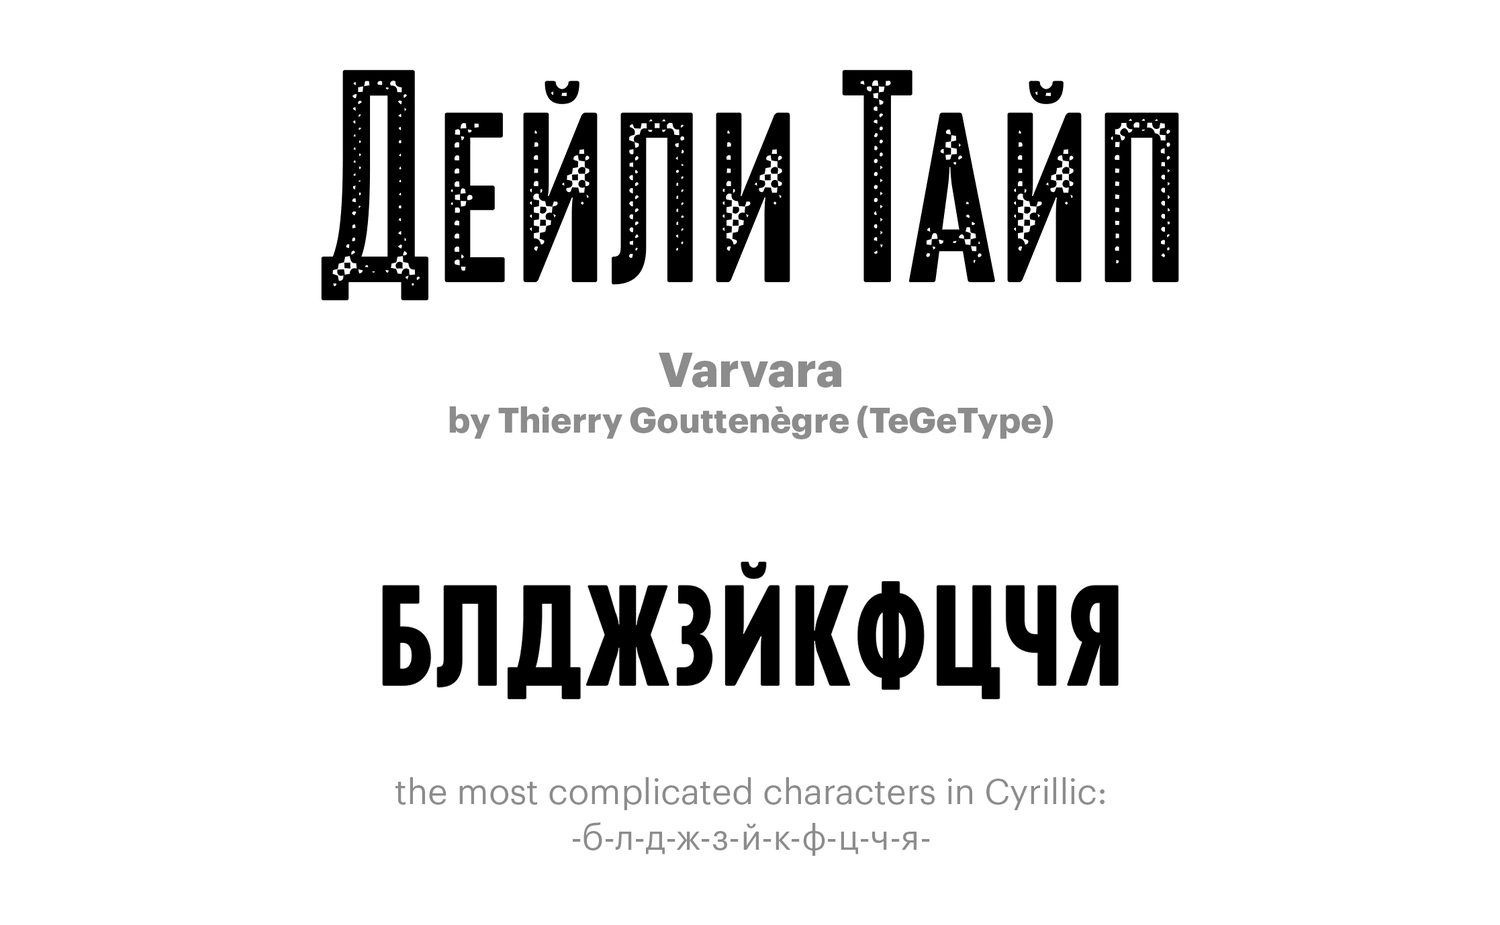 Varvara-by-Thierry-Gouttenègre-(TeGeType)